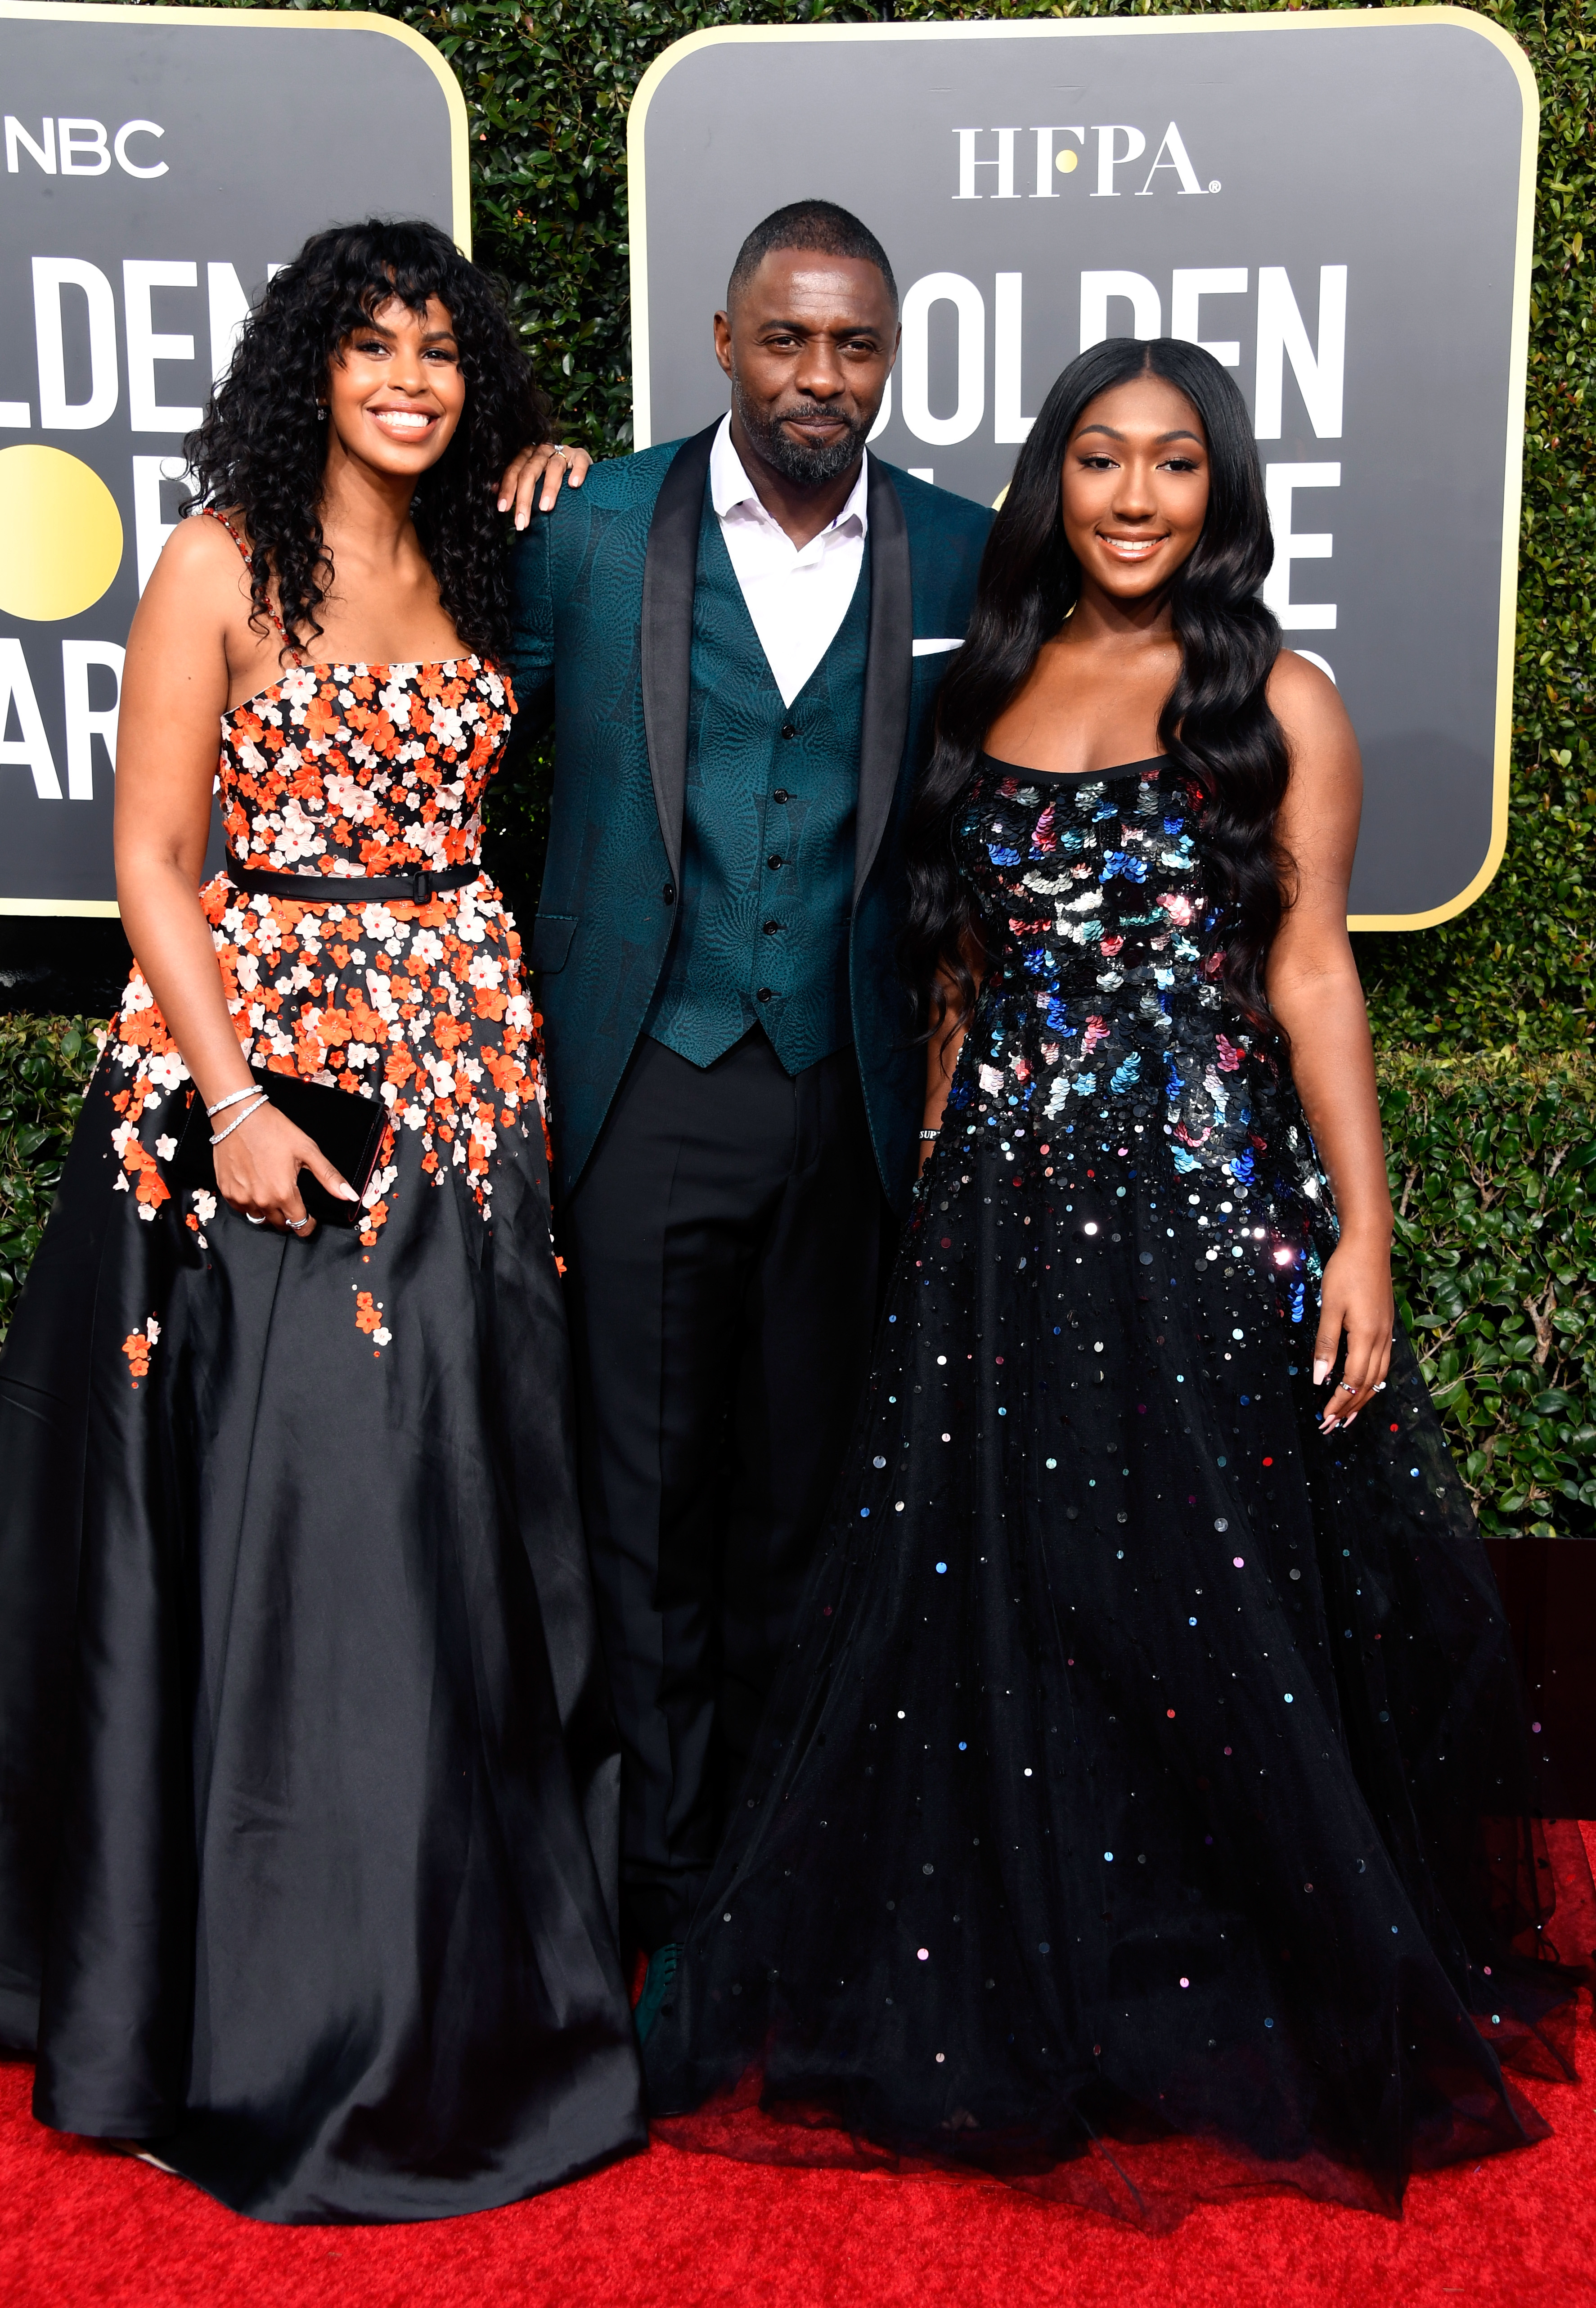 (L-R) Sabrina Dhowr, Idris Elba, and Isan Elba attend the 76th Annual Golden Globe Awards at The Beverly Hilton Hotel on January 6, 2019 in Beverly Hills, California.